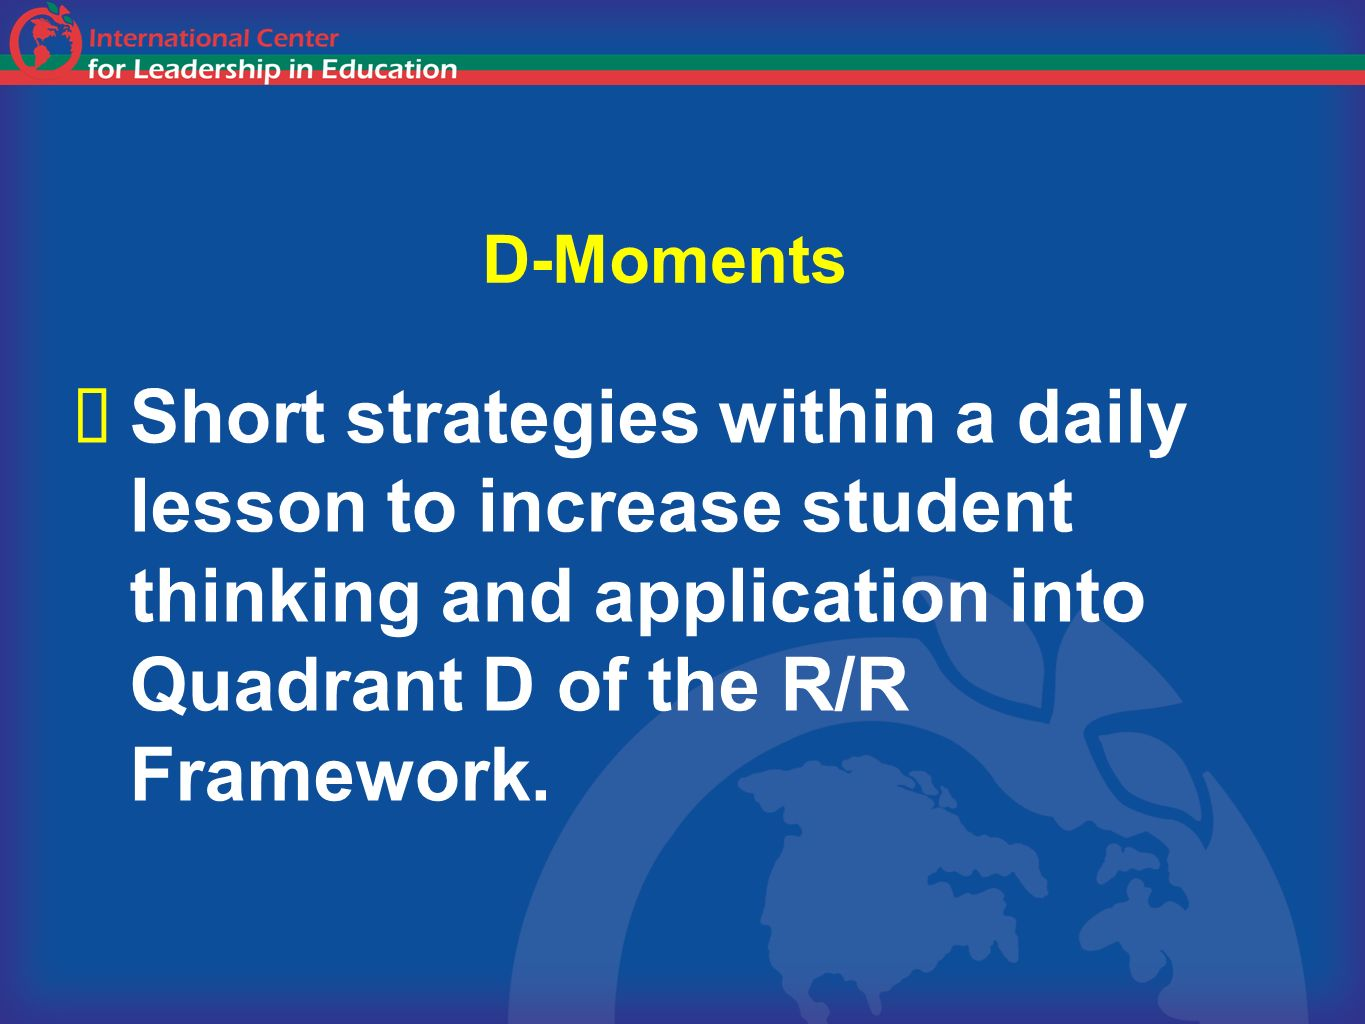 D-Moments Short strategies within a daily lesson to increase student thinking and application into Quadrant D of the R/R Framework.